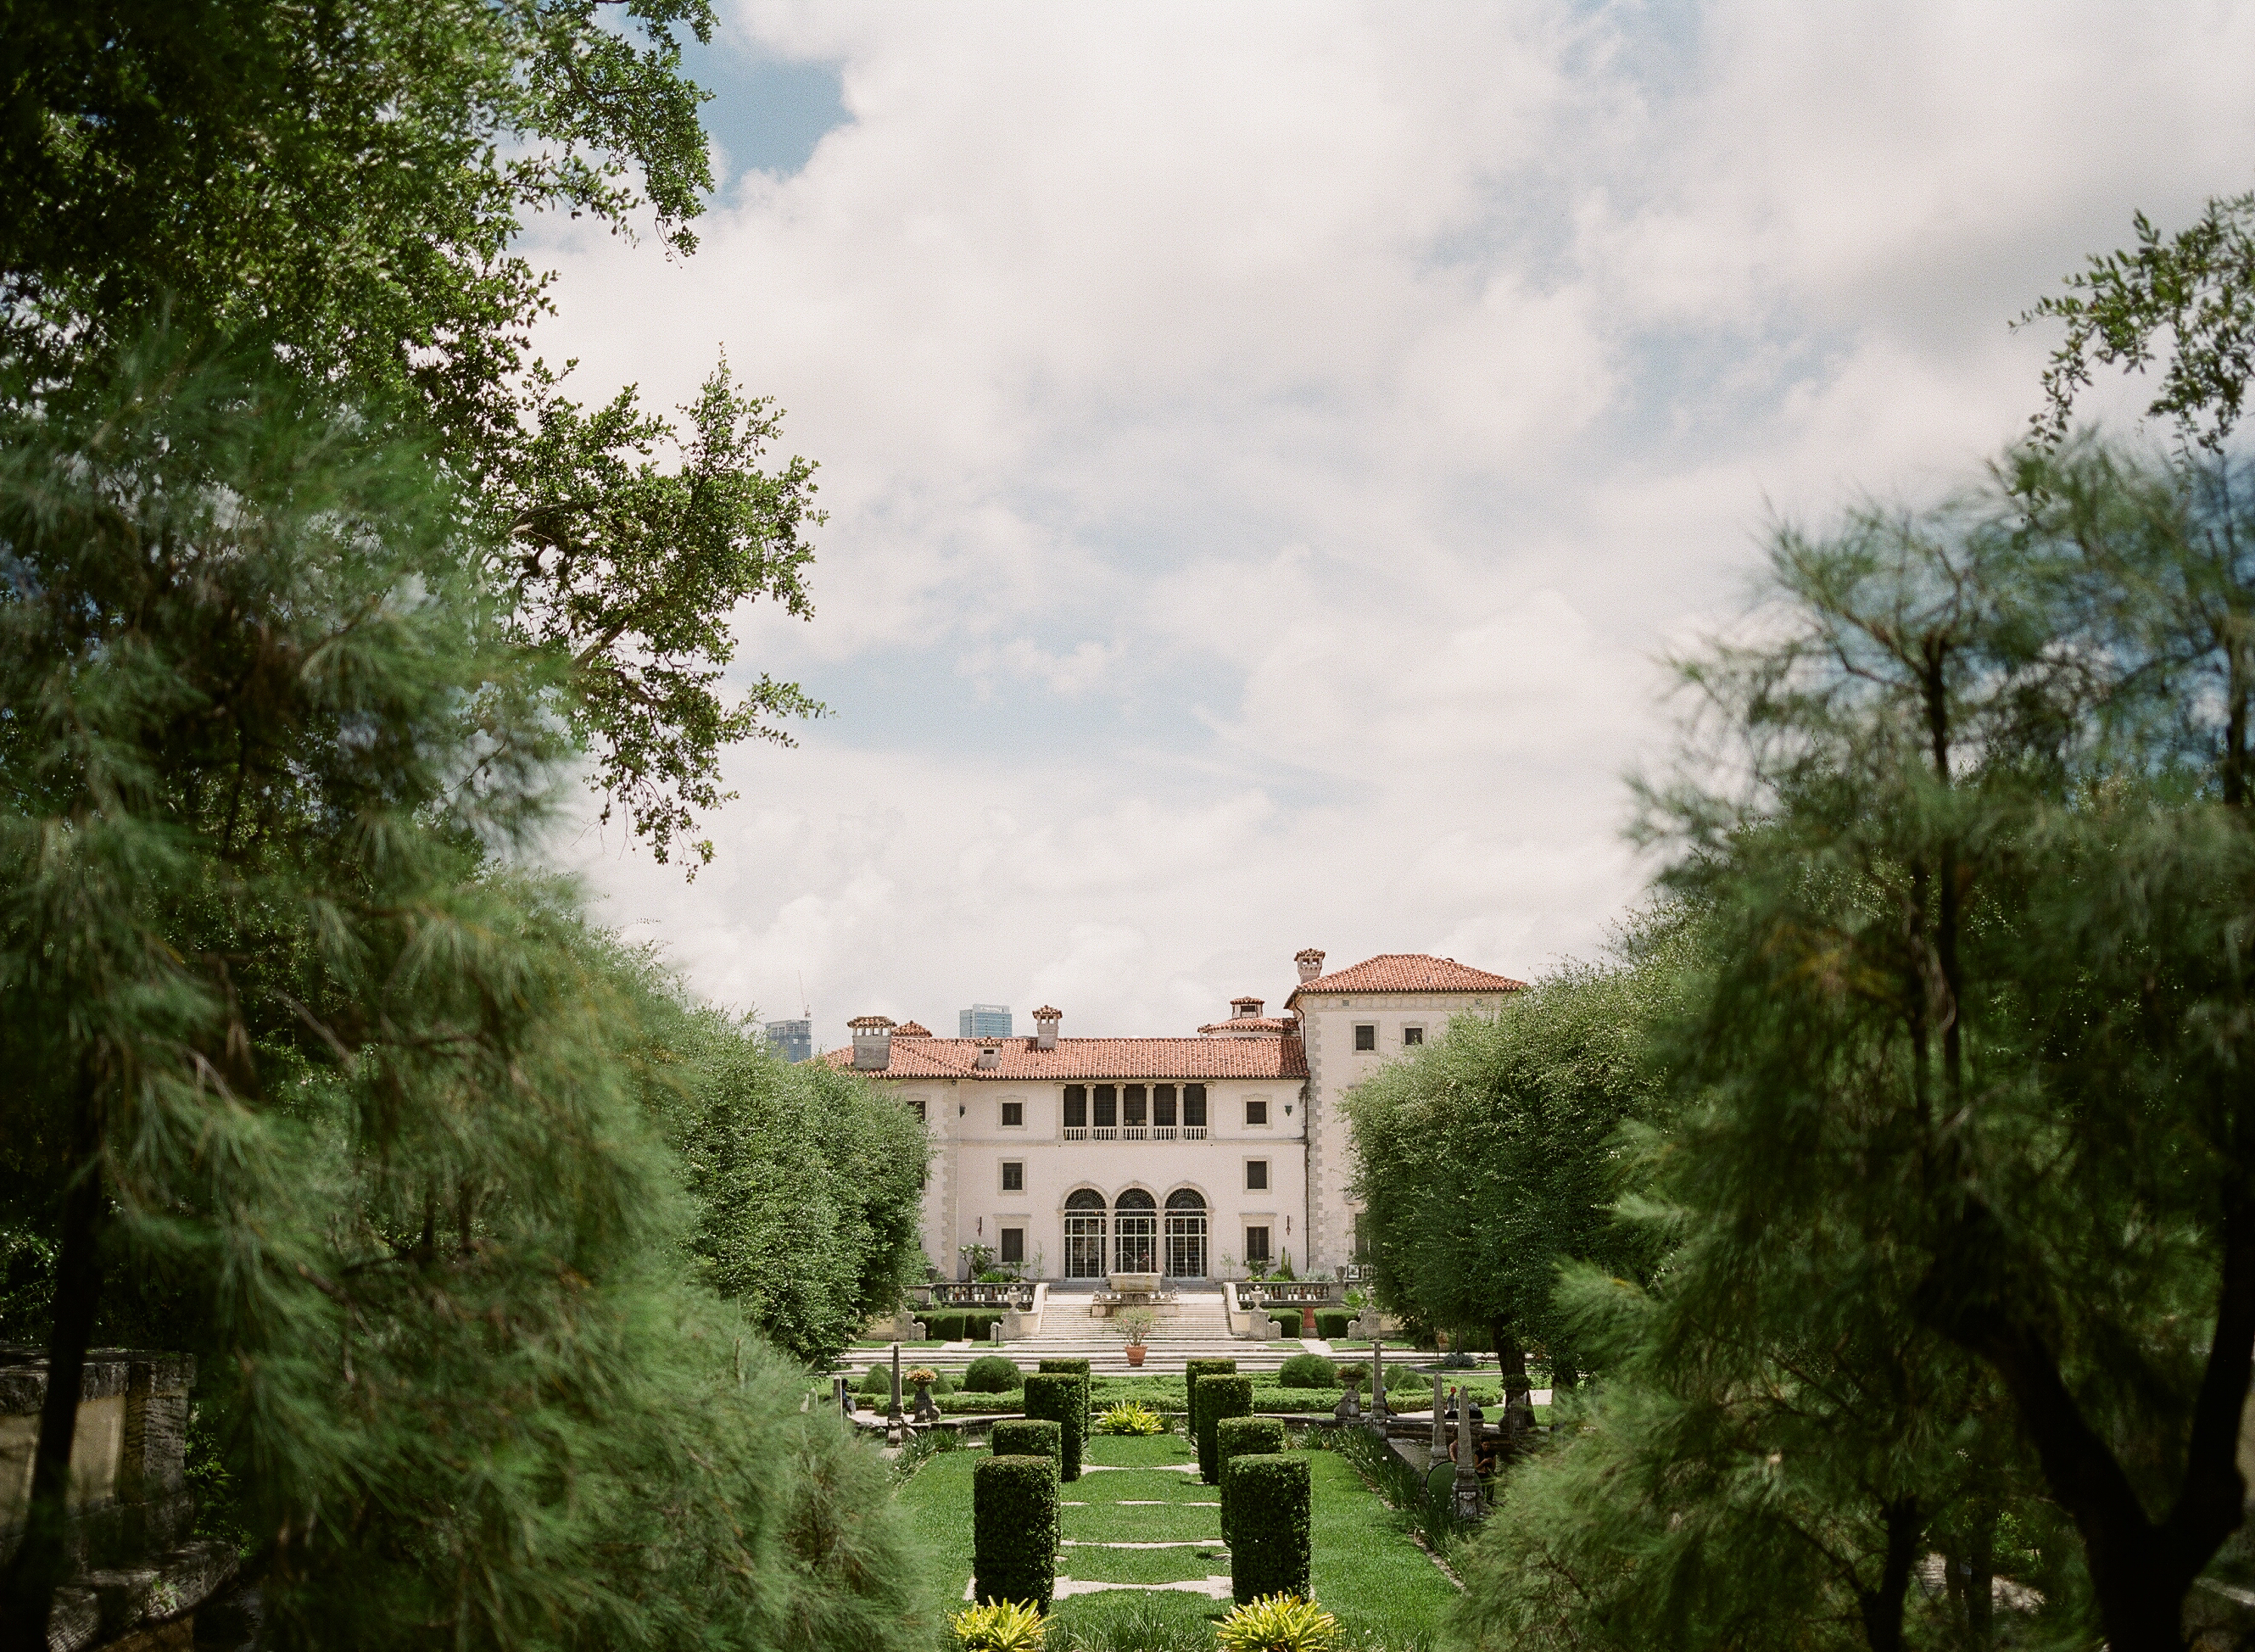 The Vizcaya Gardens Are A Wedding Photographer S Dream If You Looking For Stateside Venue With European Flair